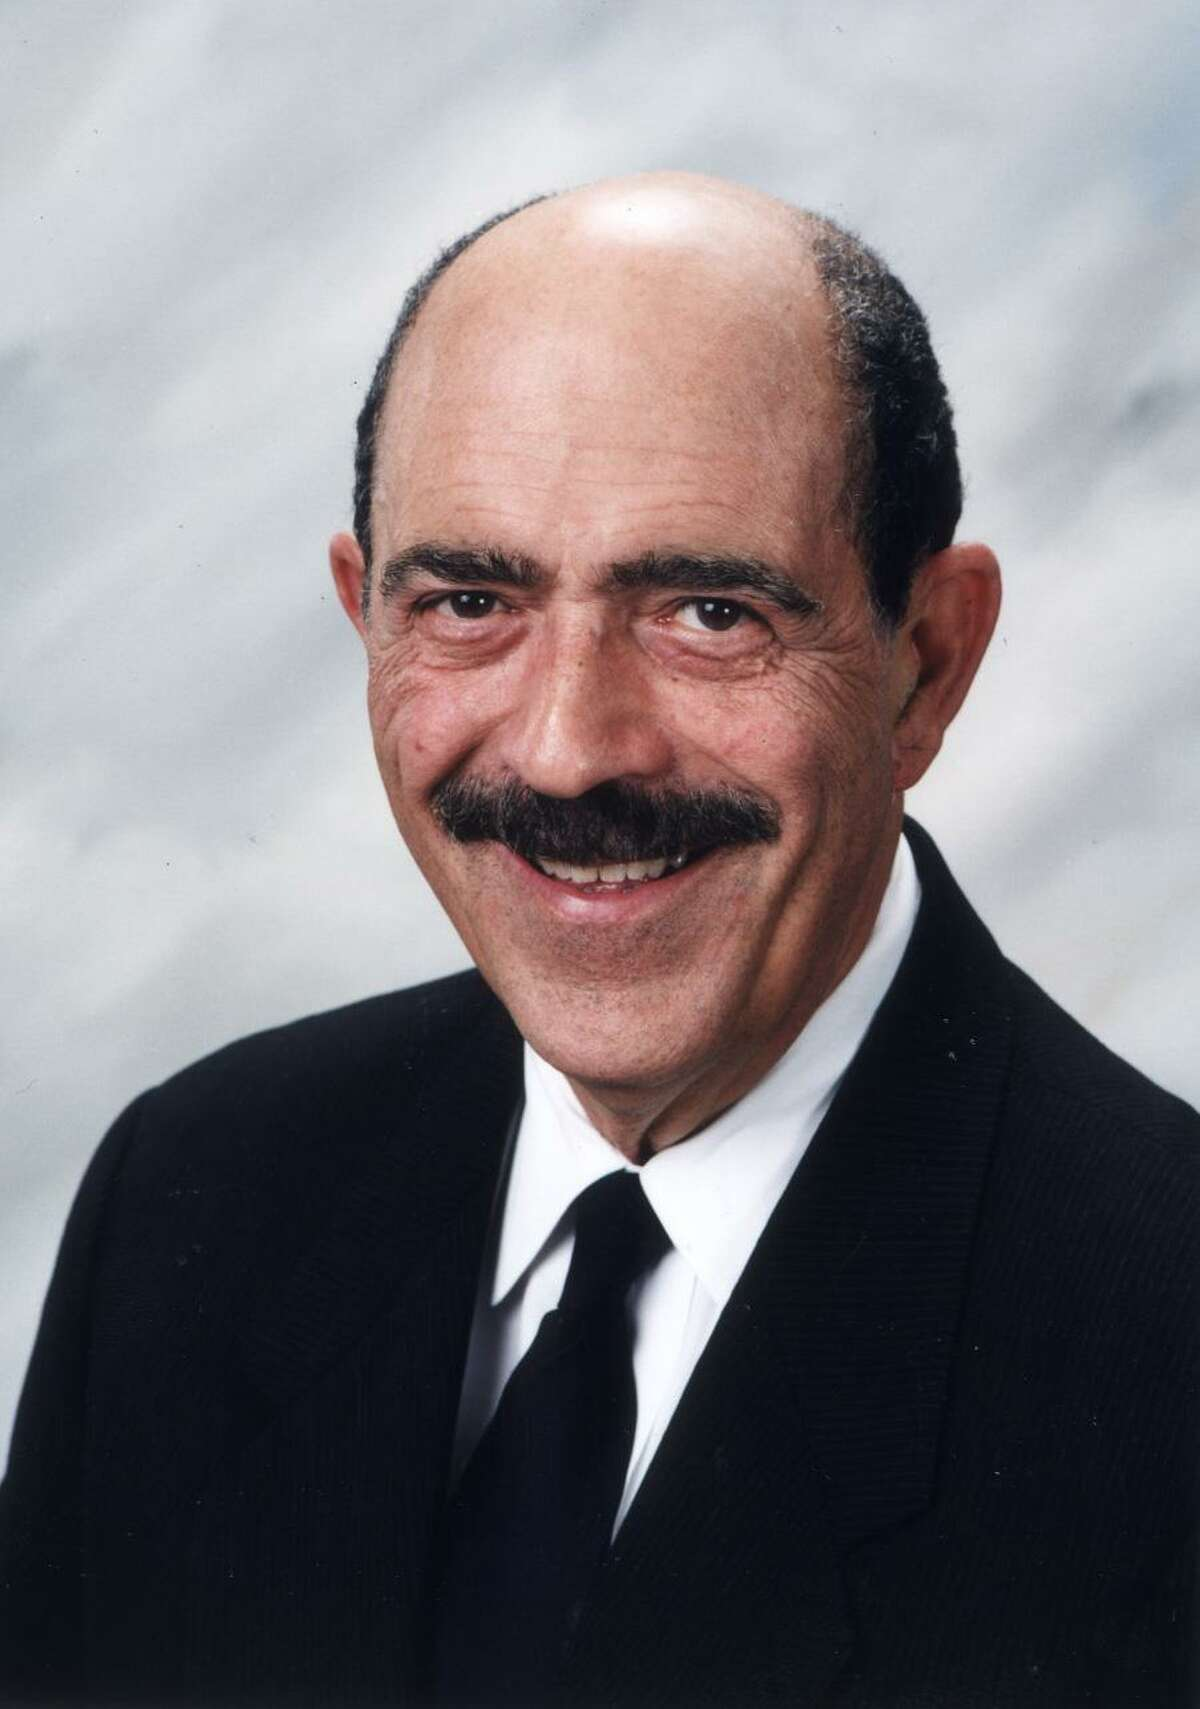 Paul Lazzaro, the long-time vice president of Marketing and Public Affairs. The Woodlands Operating Co., is shown in this 1990 Houston Chronicle archive photograph. Lazzaro died on Thursday, Nov. 14, 2019.